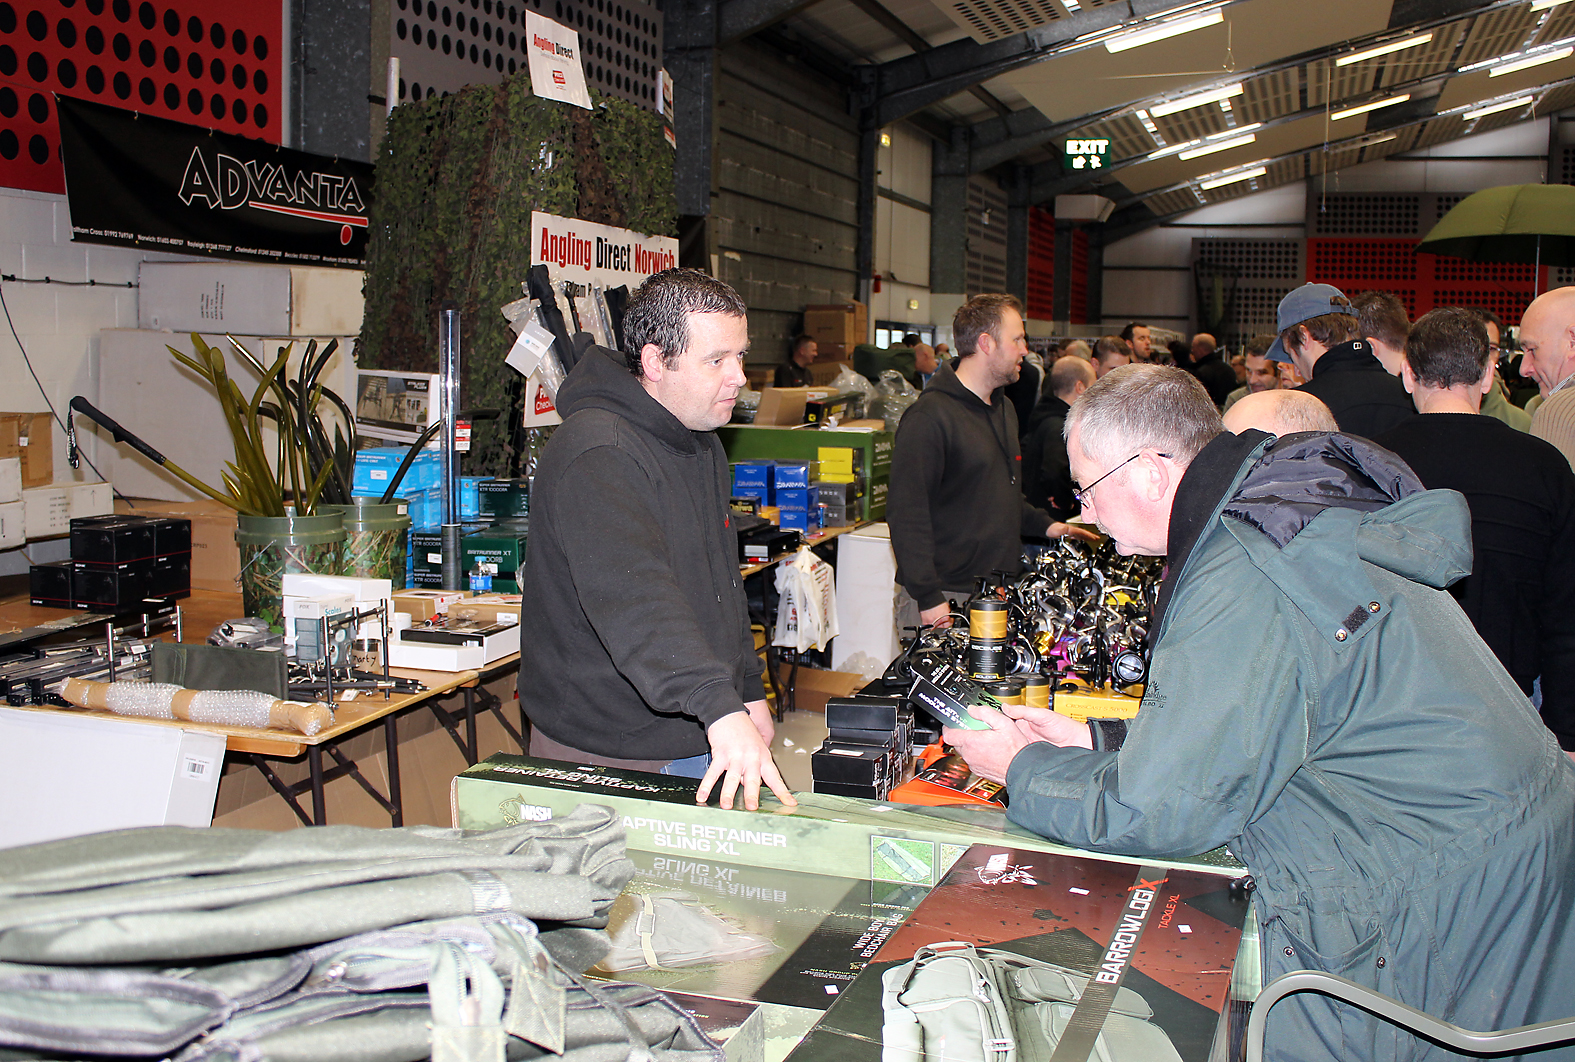 Offering good discounts on their carp products, local tackle dealers, Angling Direct